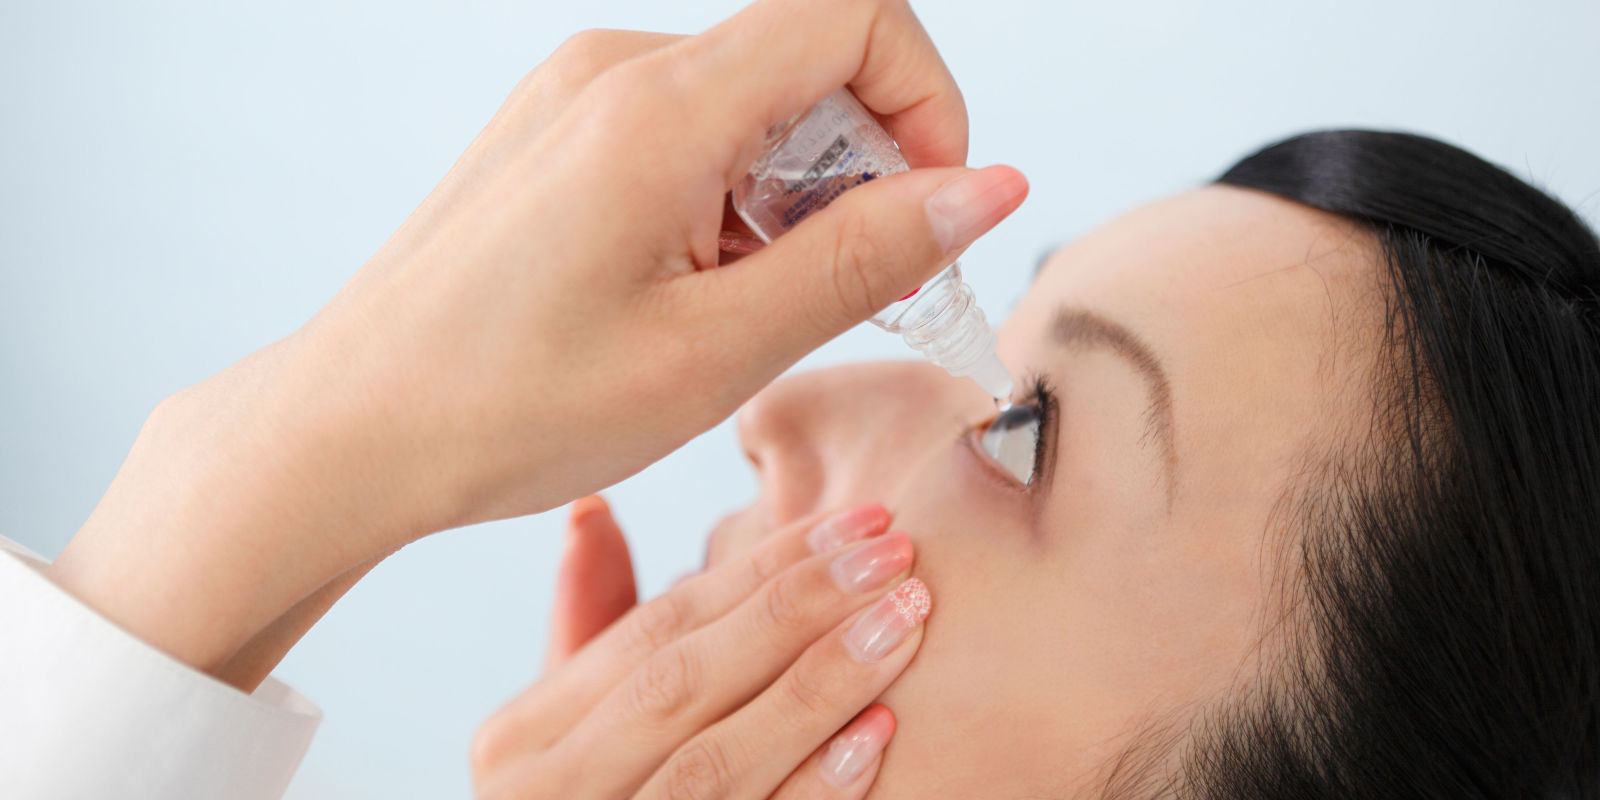 What Can Happen If You Drink Eye Drops